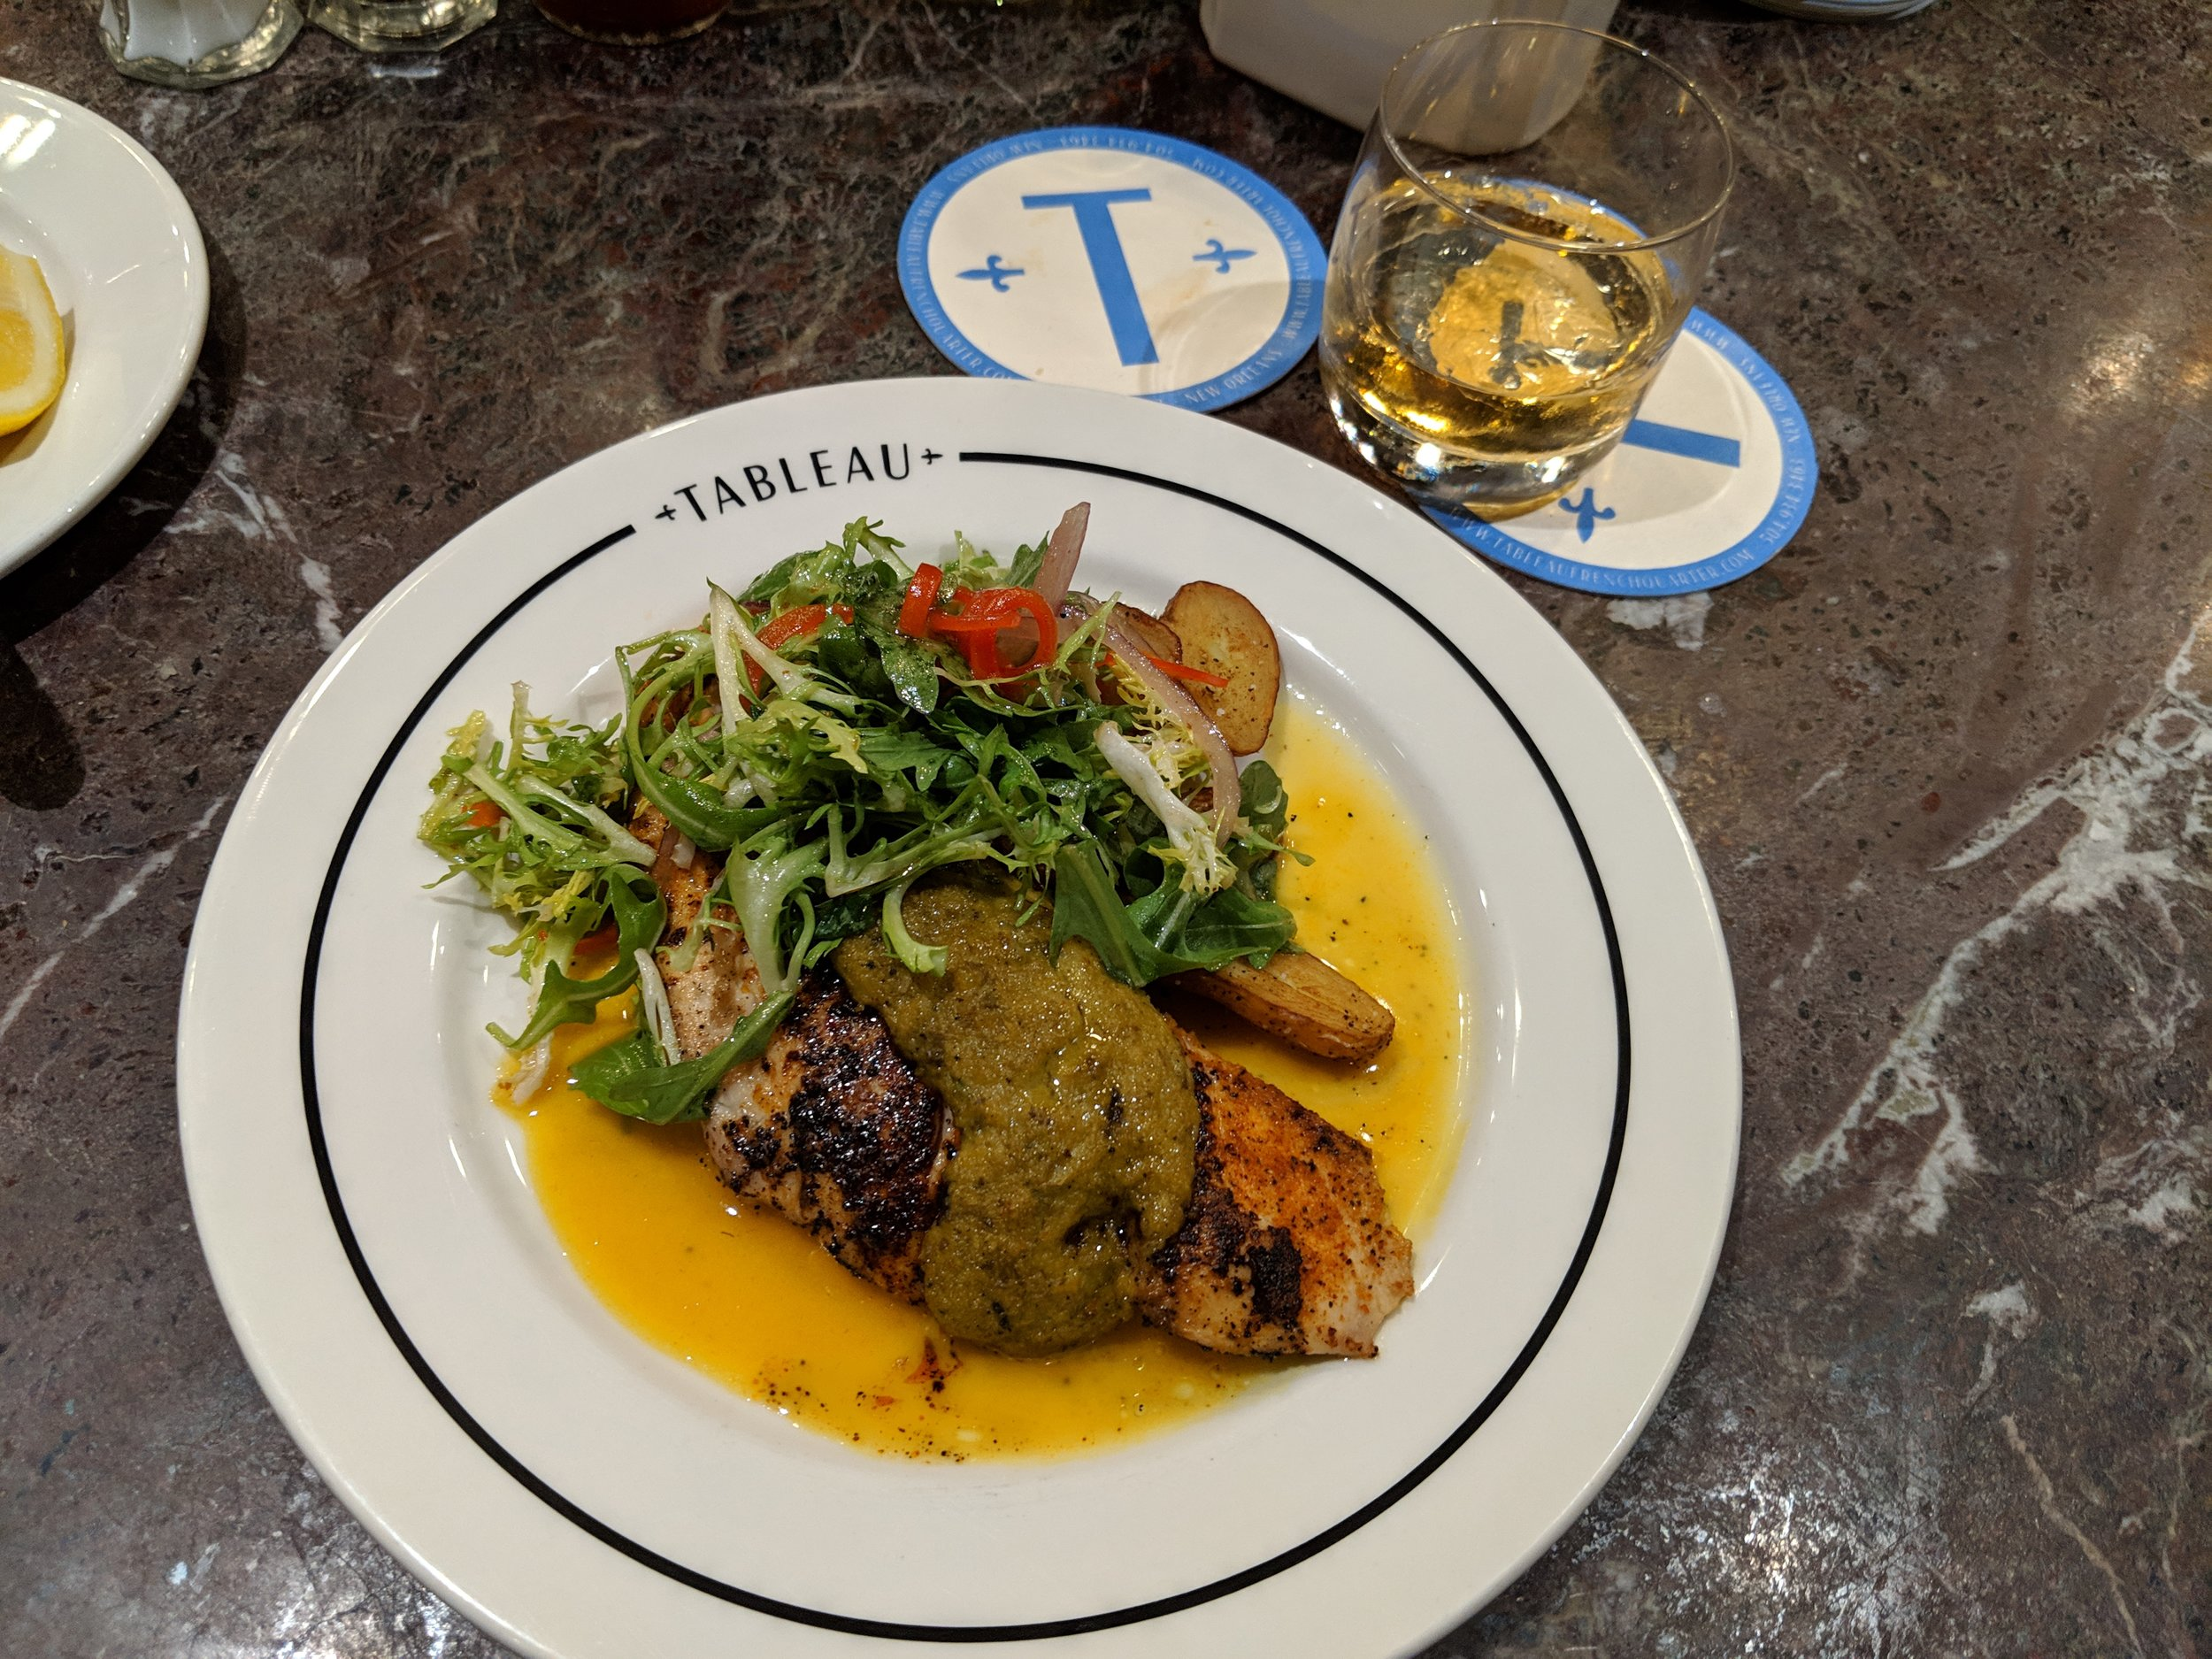 I managed to make it to Tableau before the kitchen closed and enjoyed my post-climb feast of local redfish with a greens salad and an Angel's Envy bourbon. I ended dinner refreshed from my evening climb, spirits lifted from the delicious meal and ready for a couple of days of conference-going by the river.